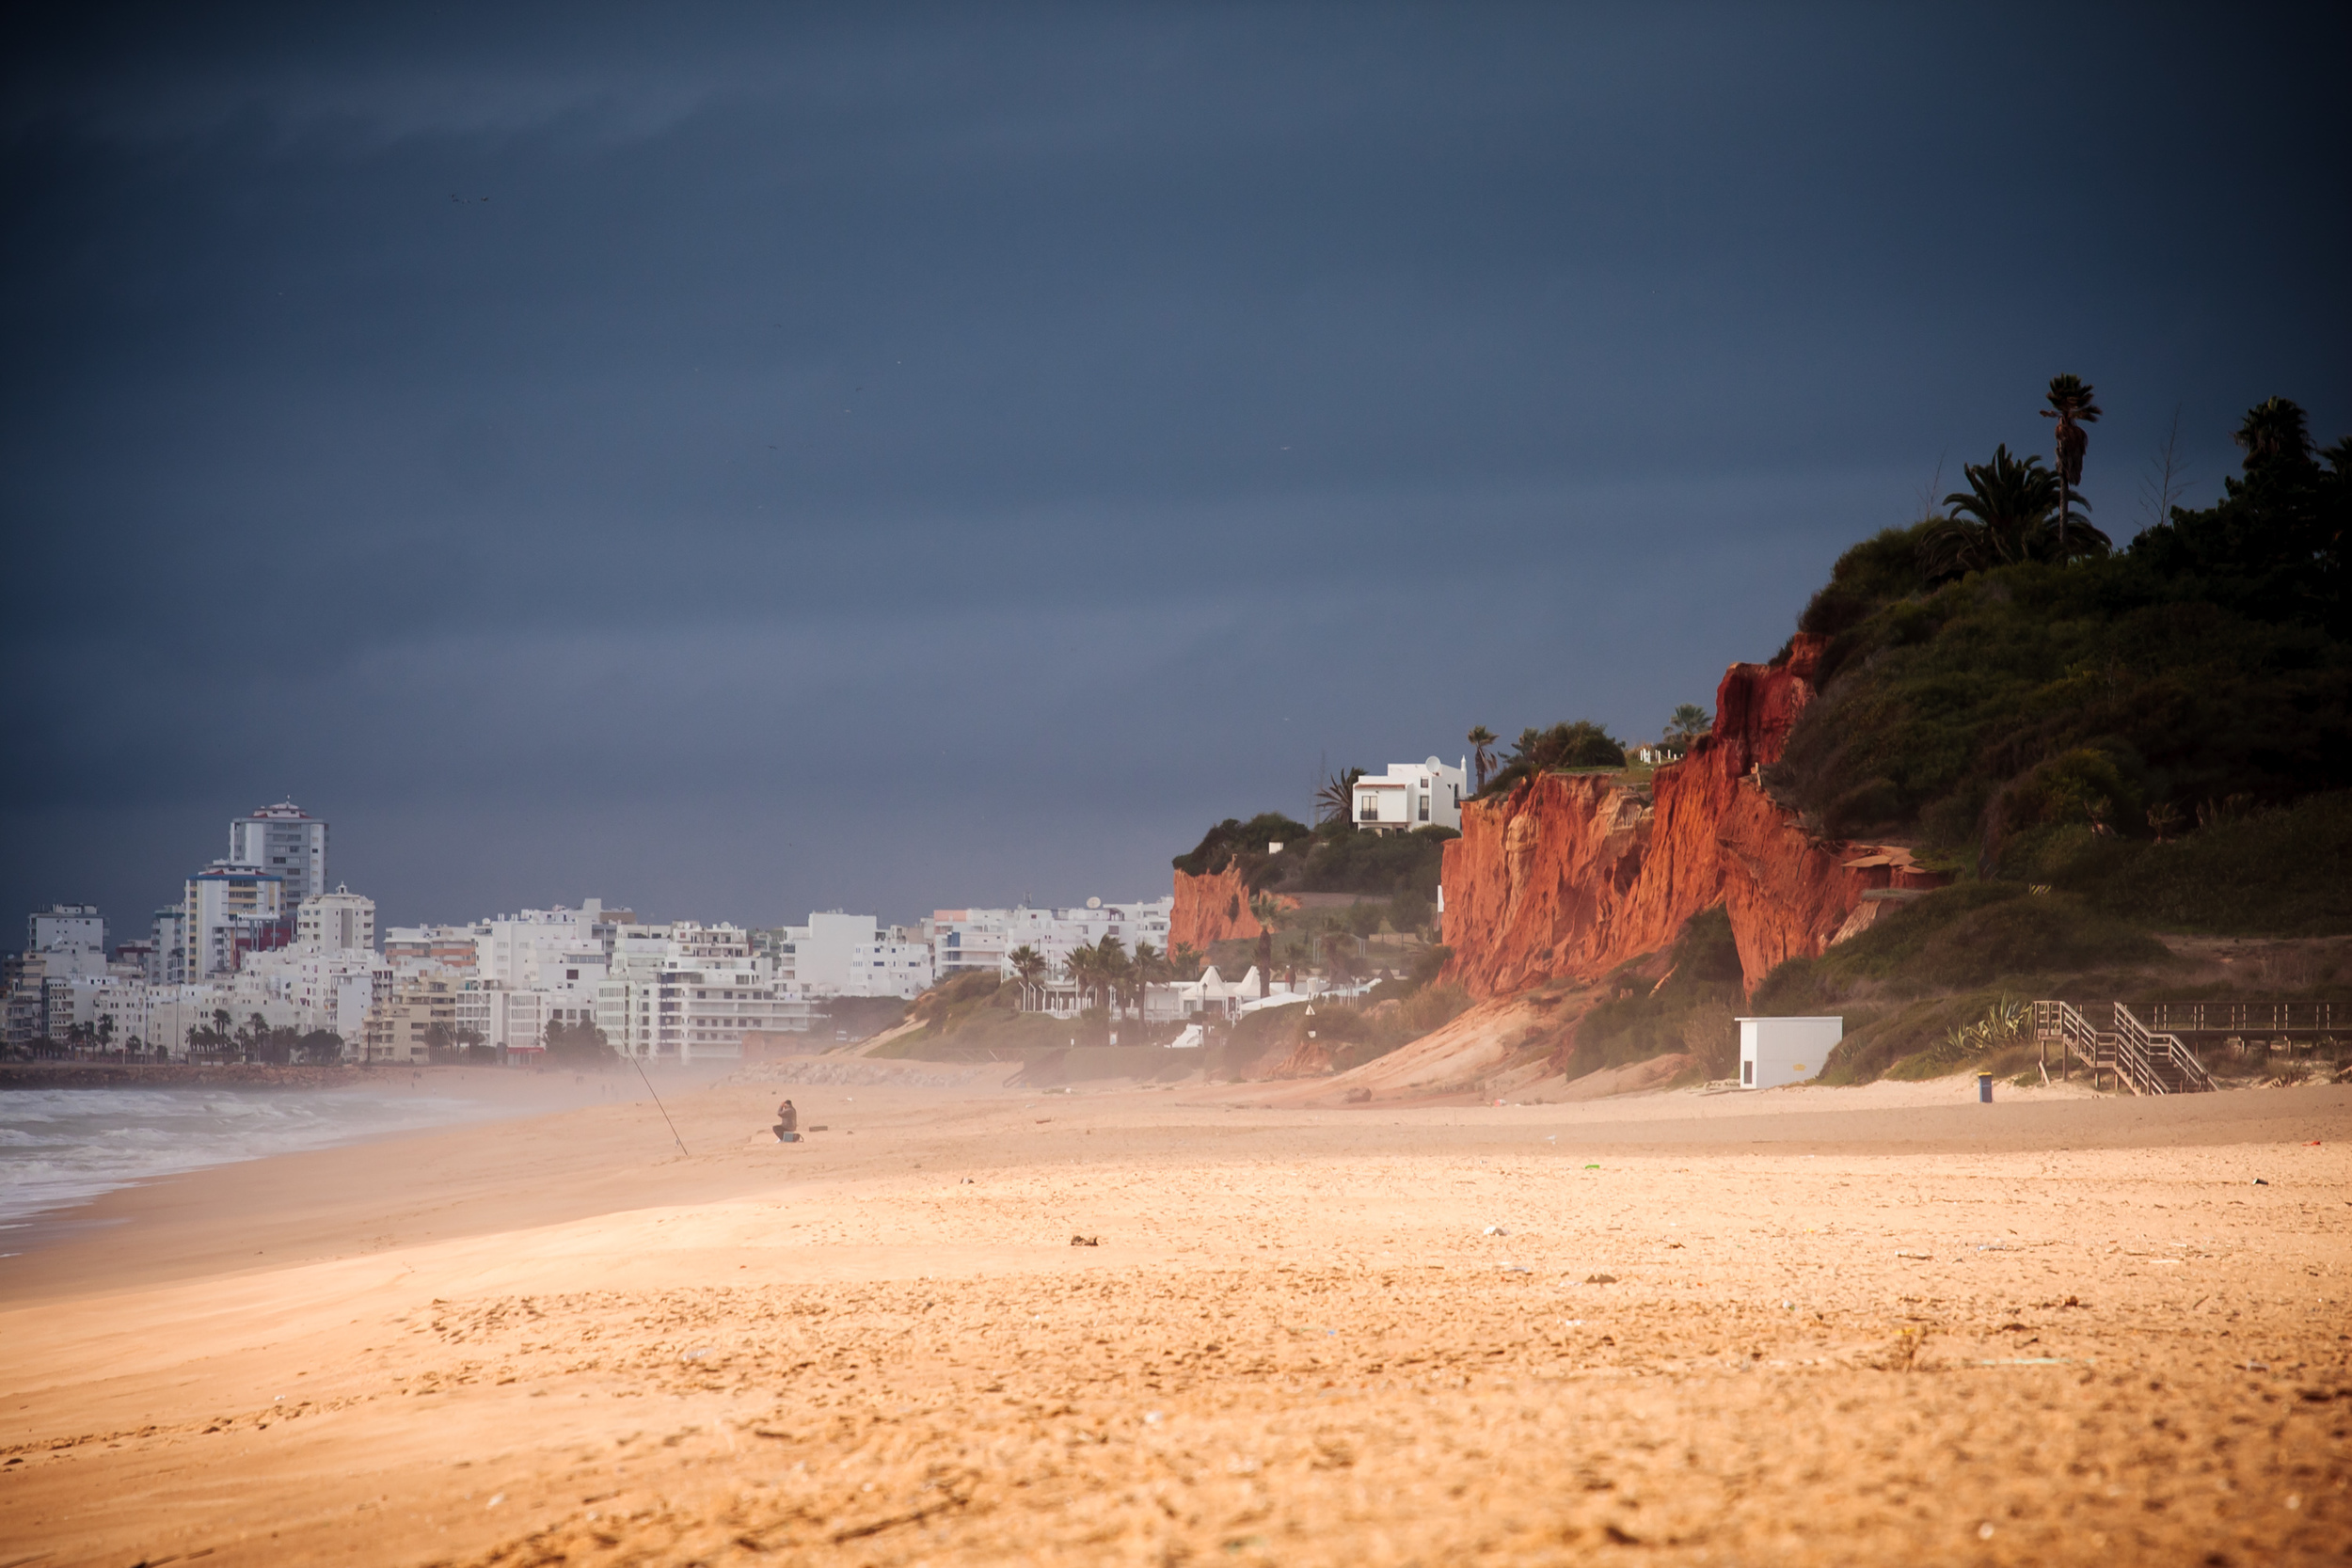 In the summer, this place is packed with bright, colourful beach paraphernalia, along with hundreds of holiday-makers